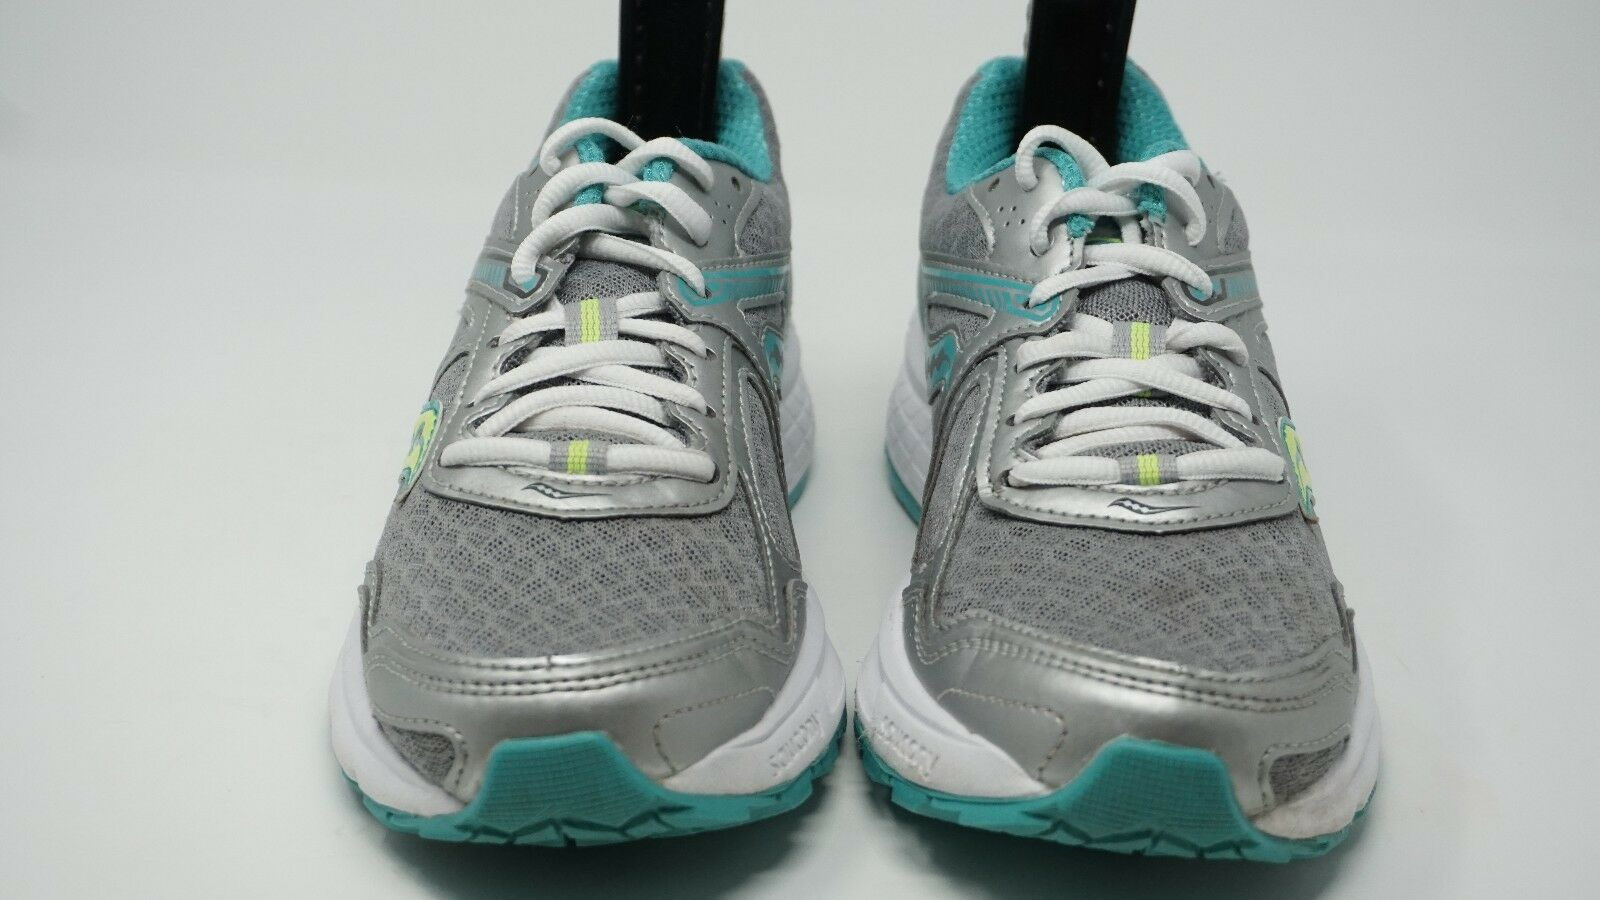 Saucony Womens S15333-1 Grey Teal Citron Running shoes Size 6.5M Free Shipping